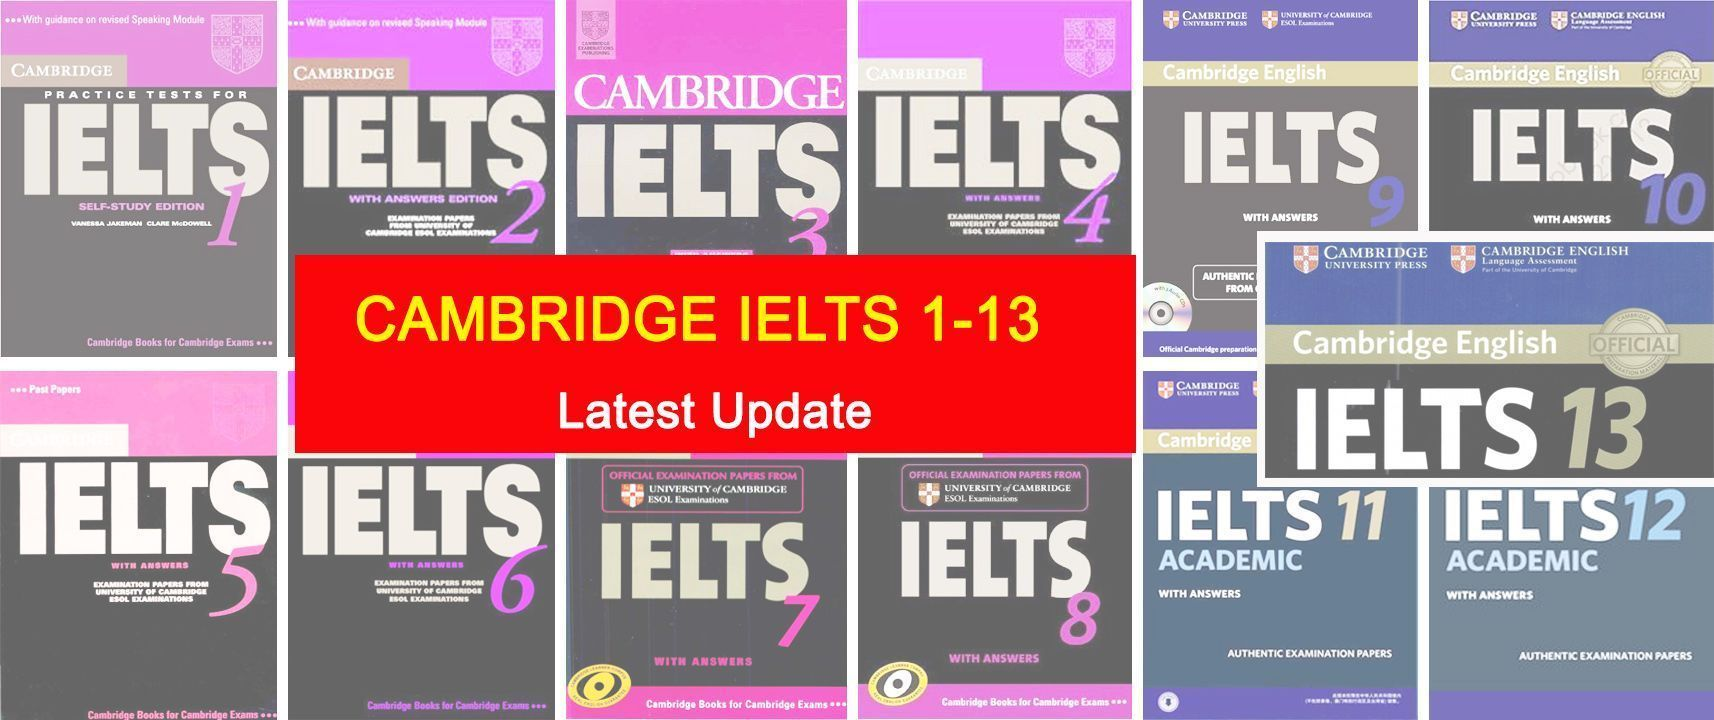 For 5 cambridge practice tests pdf ielts